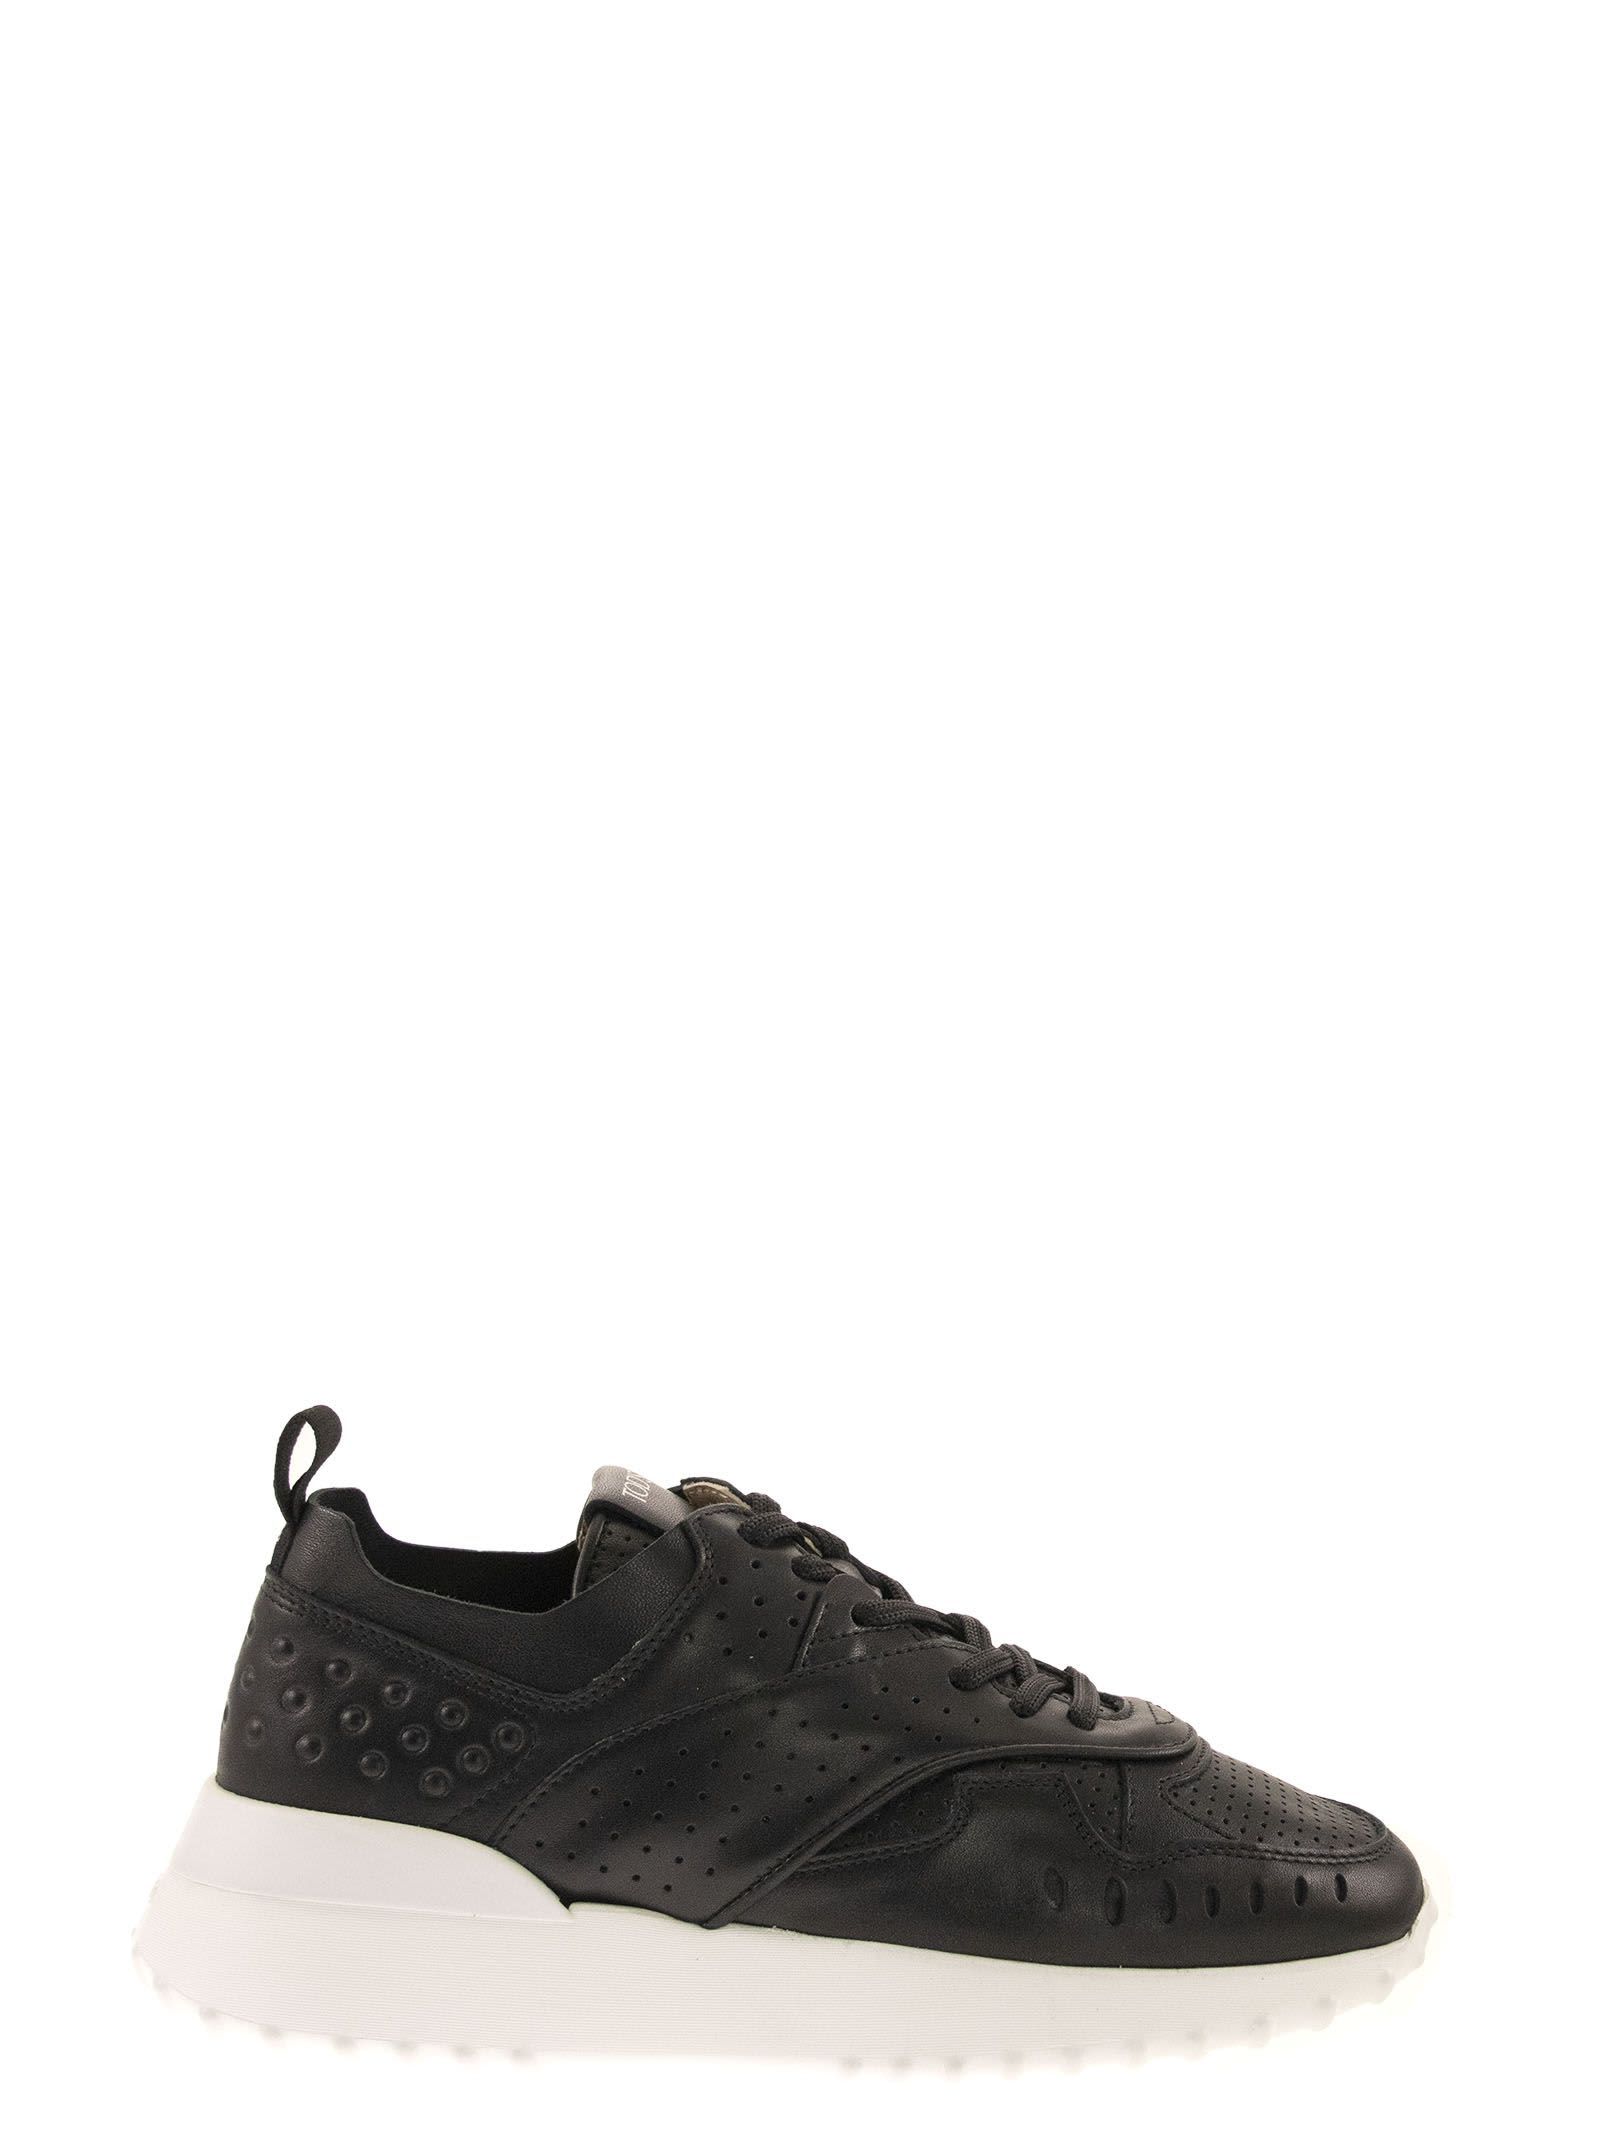 Tods Leather Sneaker - Black